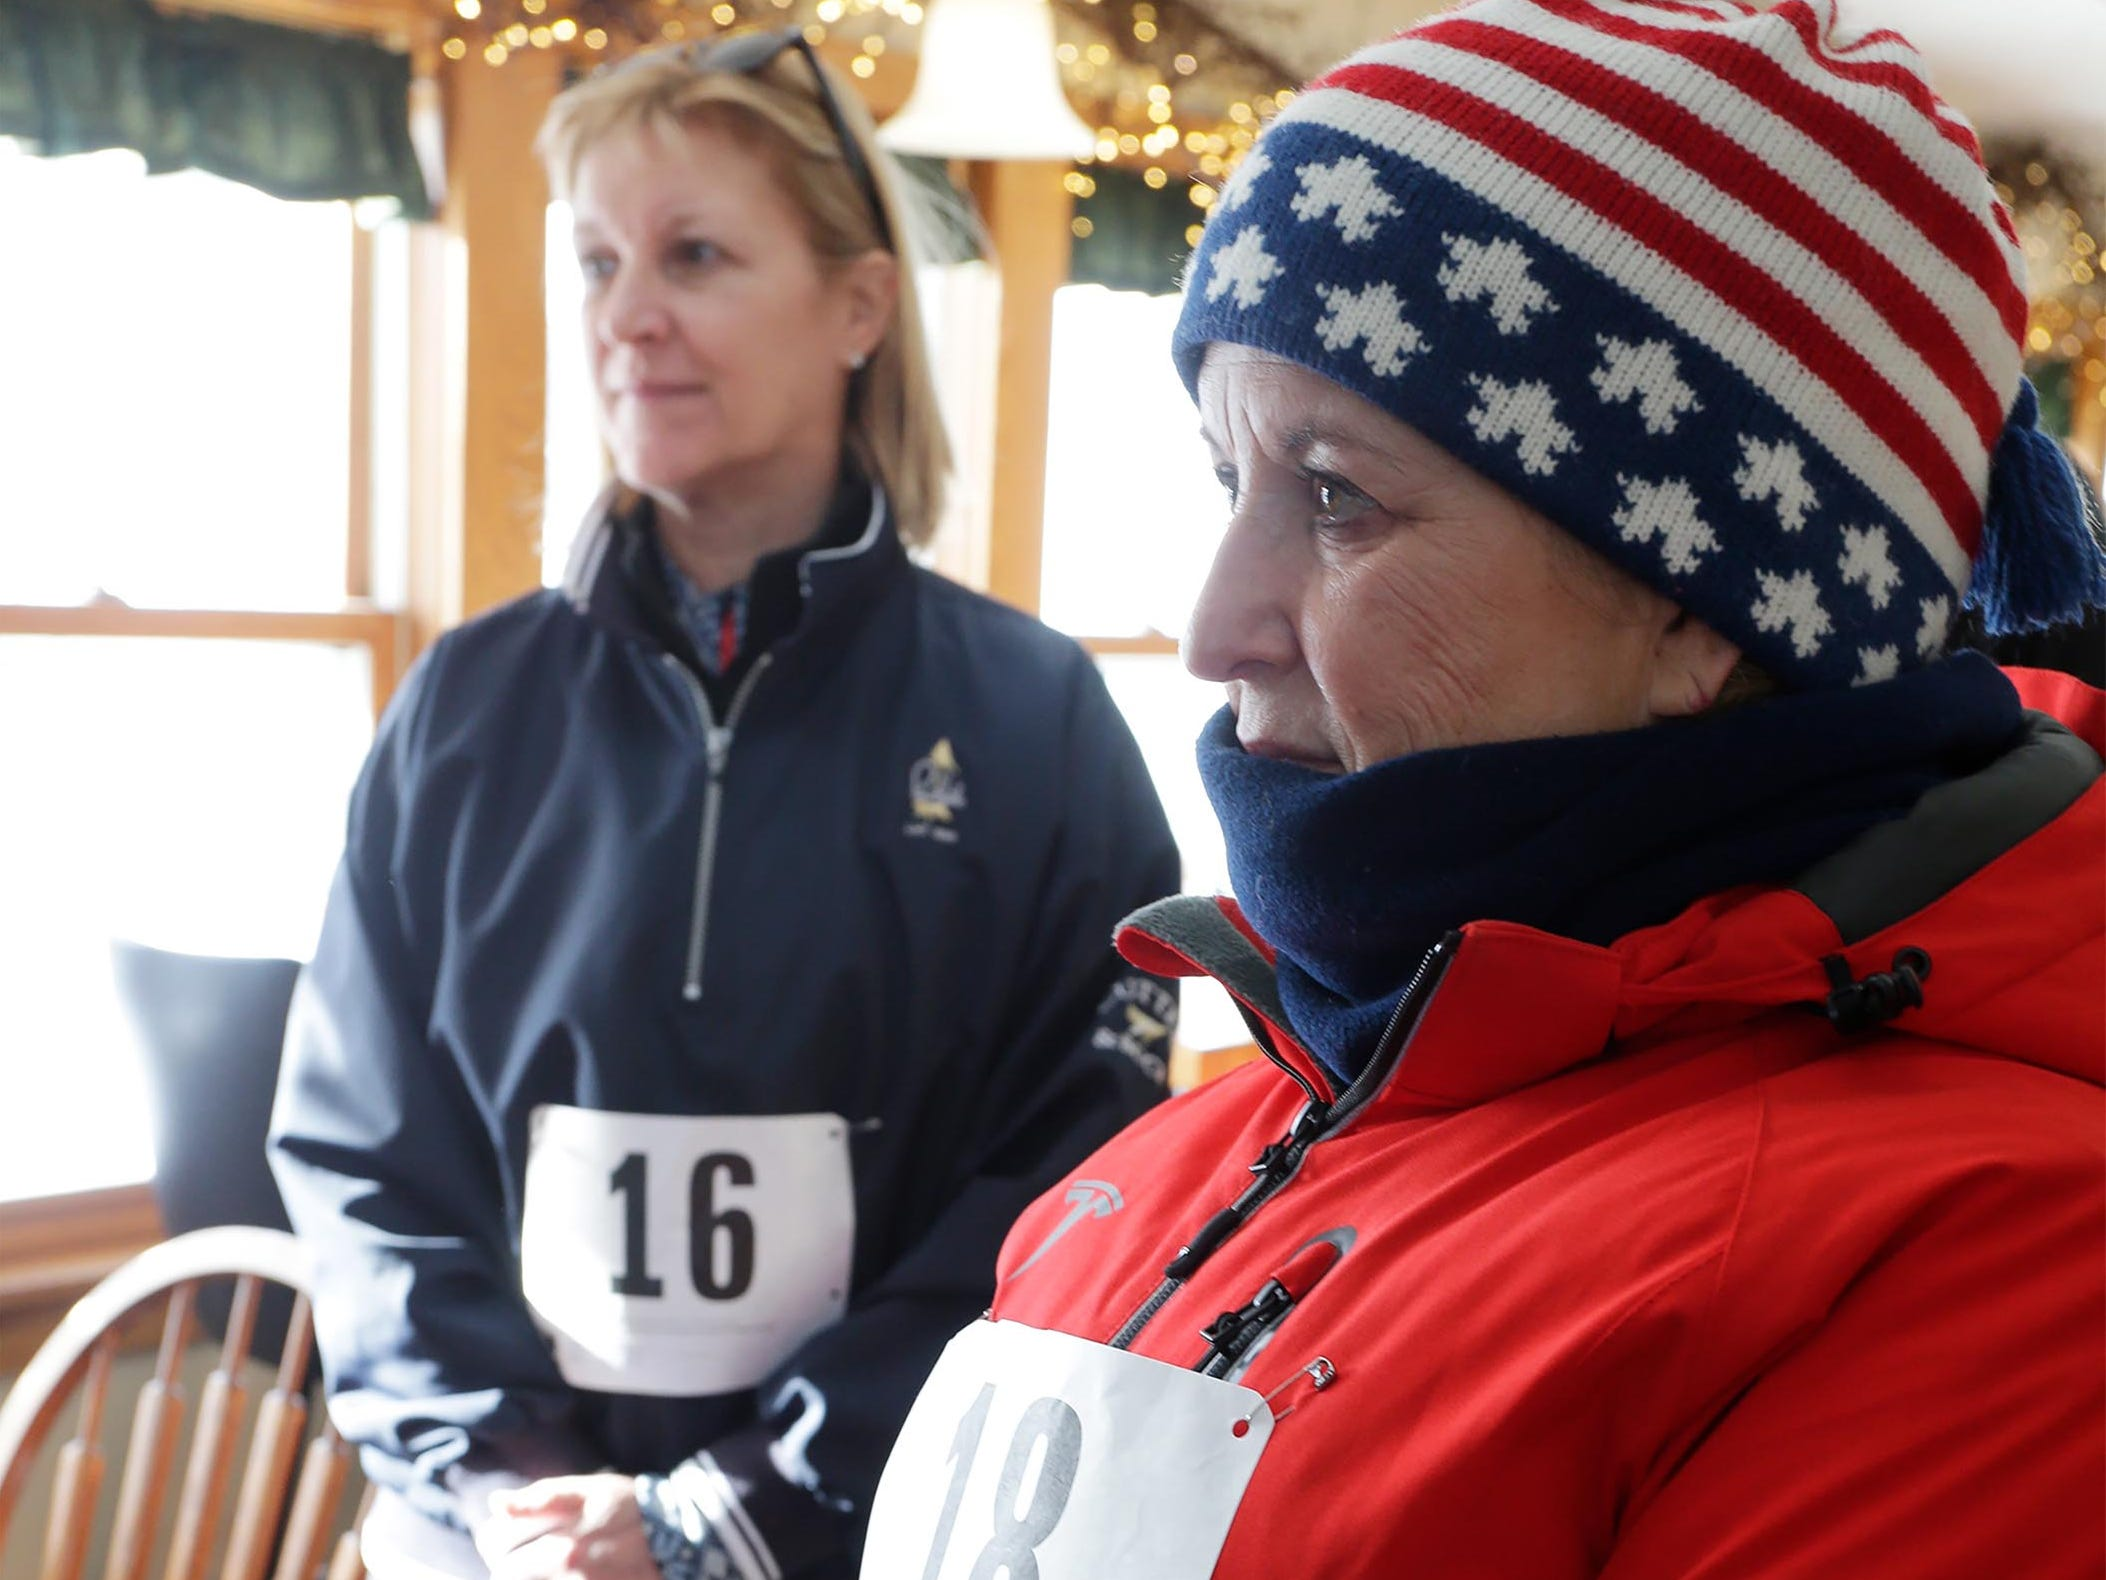 Mary Sellinger of Shorewood, Wis, (16 left), and Lisa Liebl (18) of Sheboygan, listen to pre-race instructions for the Schneelauf Run, Saturday, January 26, 2019, in Elkhart Lake, Wis.